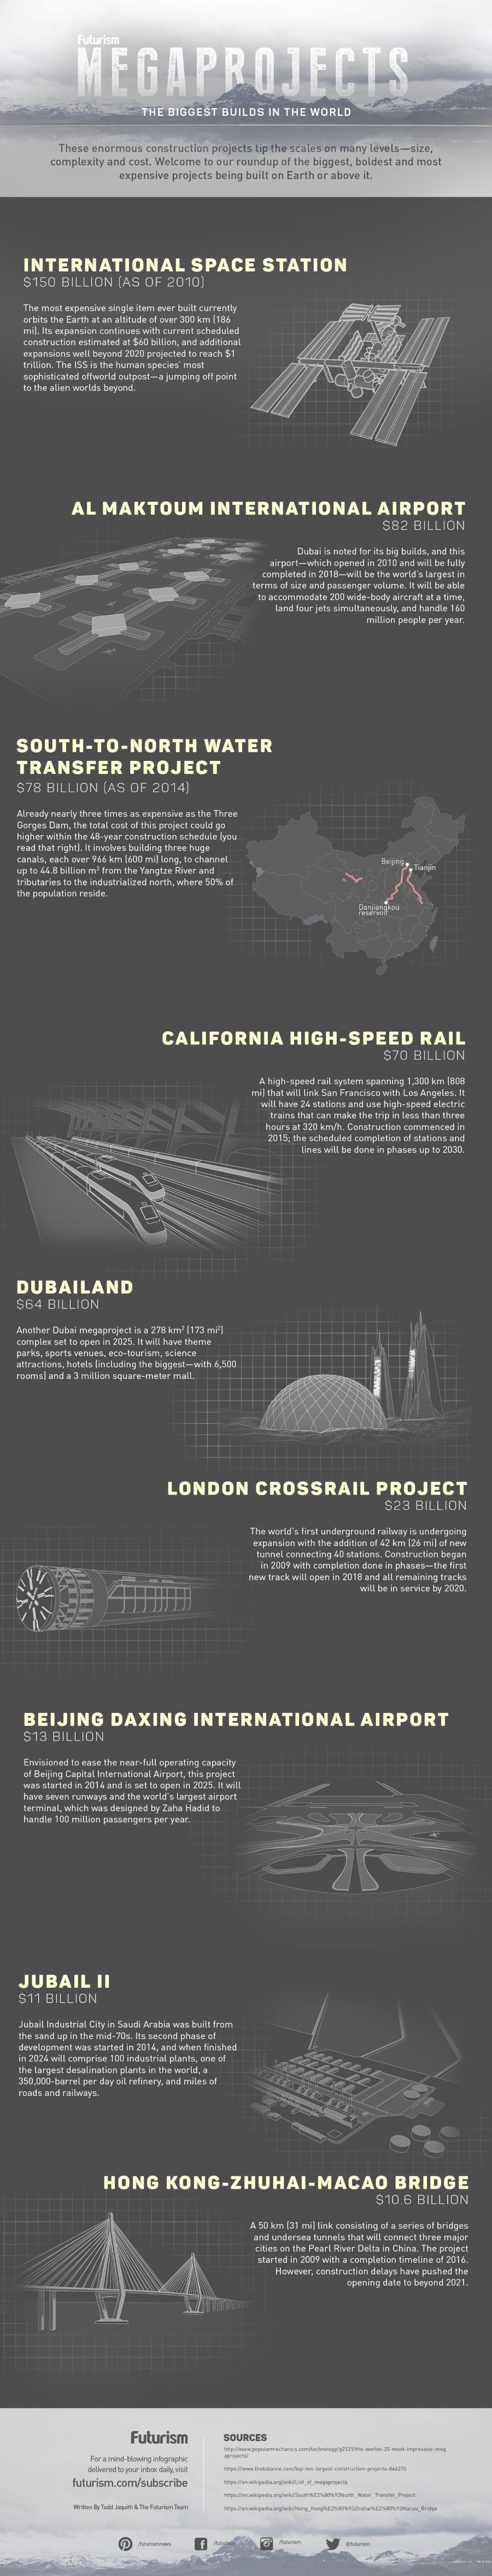 megaprojects-infographic